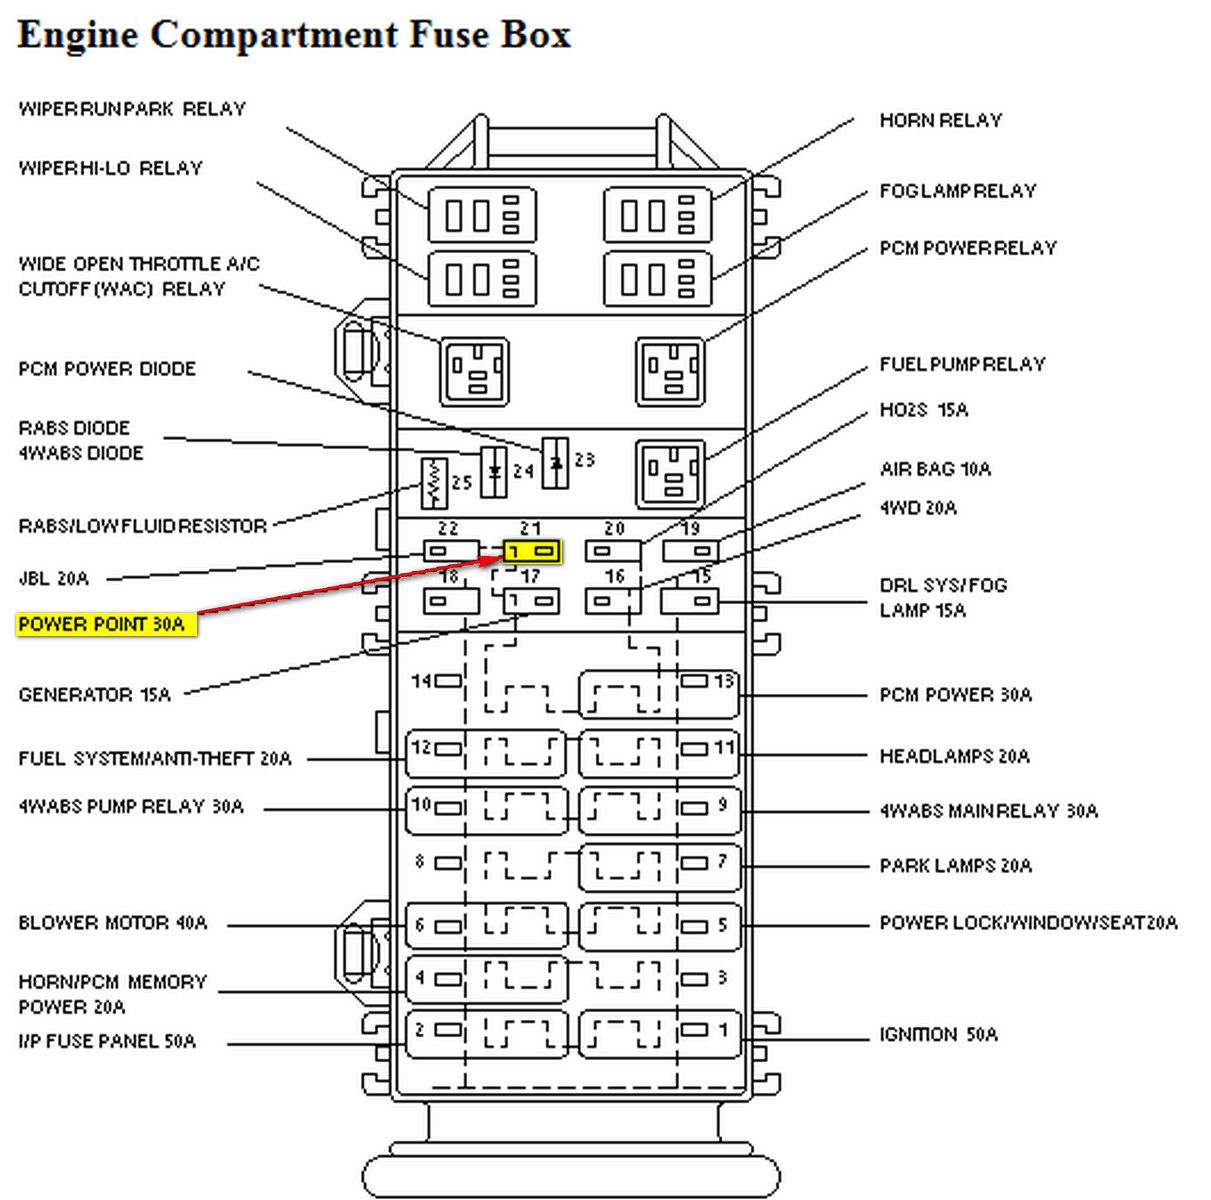 small resolution of mack fuse box diagram wiring diagram add mack truck ch613 fuse panel diagram fuse panel diagram